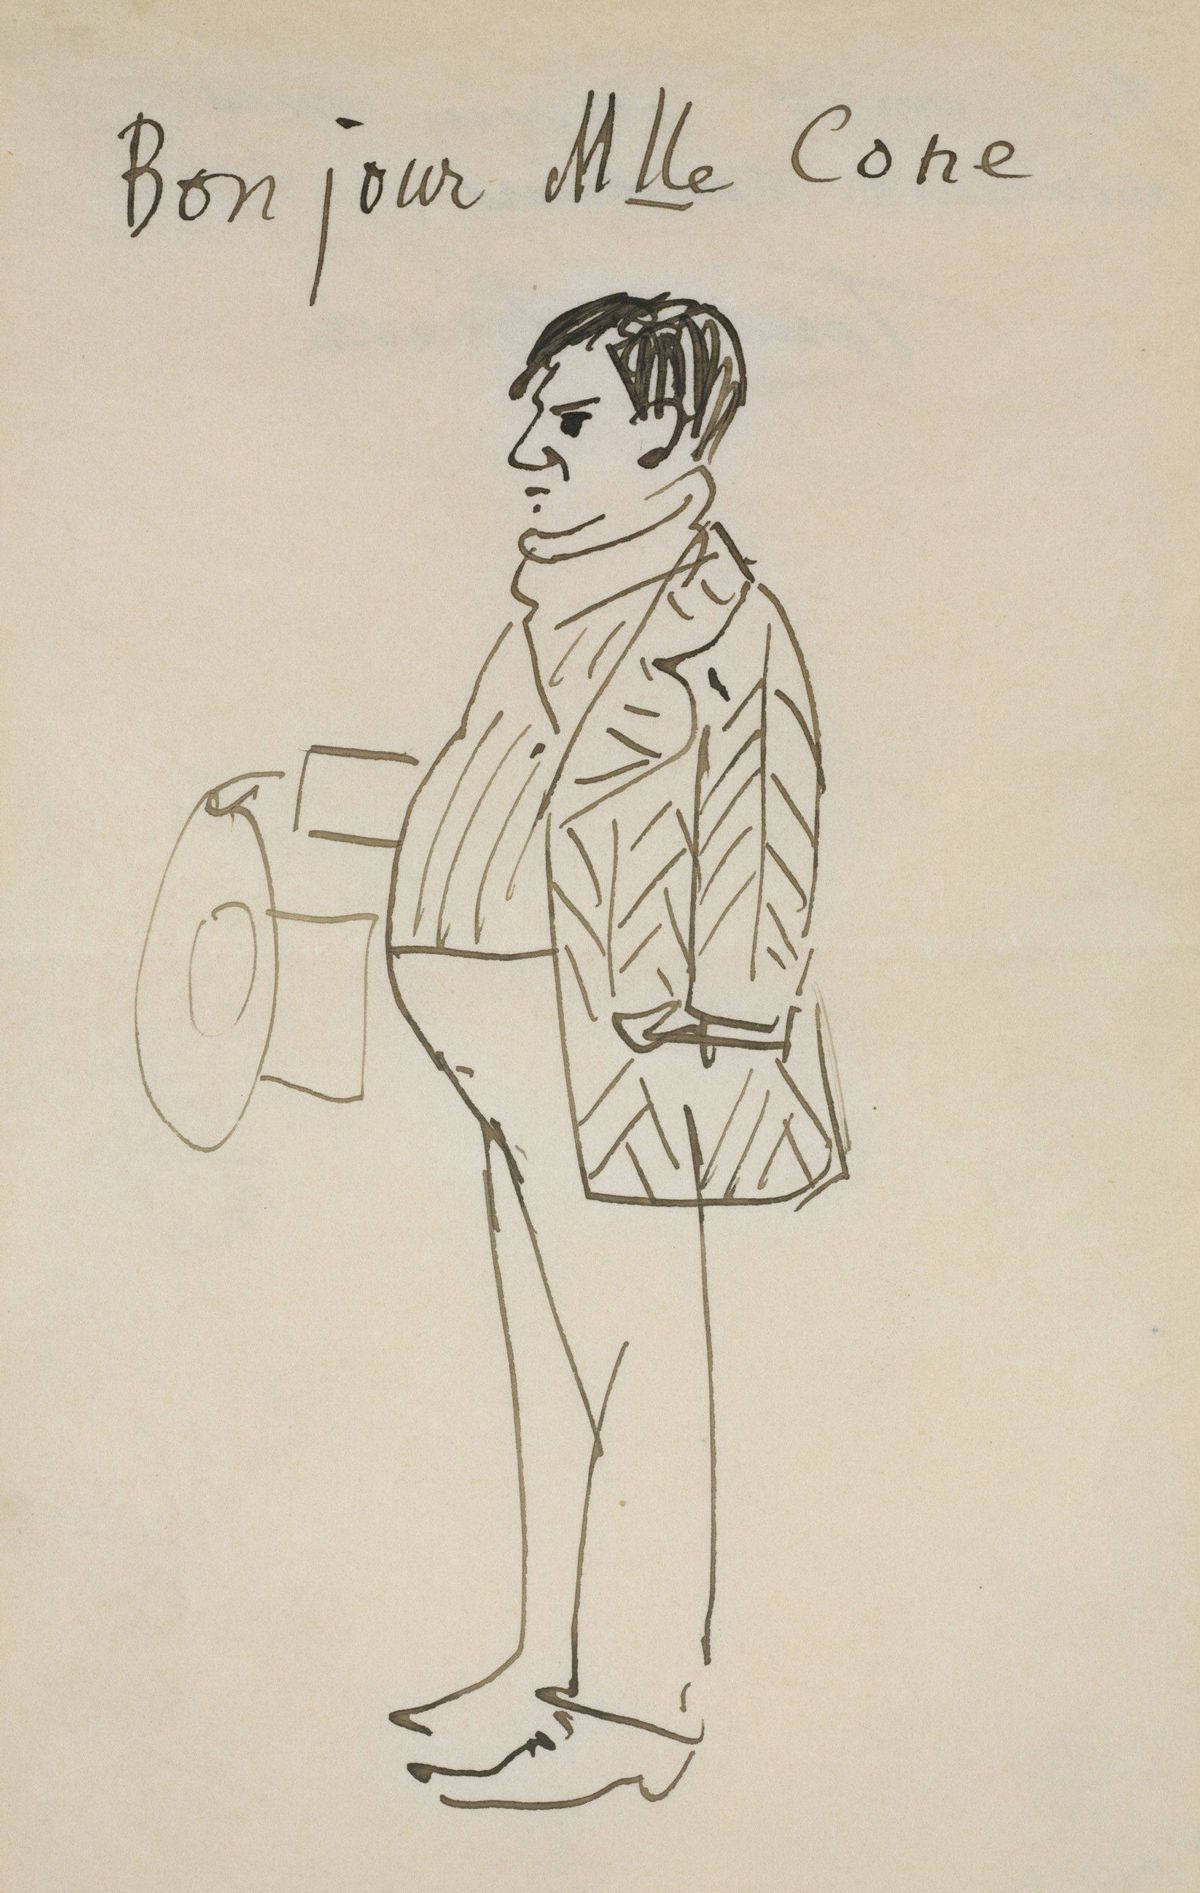 Pablo Picasso, Self-Portrait (Bonjour Mlle Cone), 1907, pen and brown ink, The Baltimore Museum of Art: The Cone Collection, formed by Dr. Claribel Cone and Miss Etta Cone of Baltimore, Maryland, BMA © Picasso Estate / SODRAC, (2012) cone_07